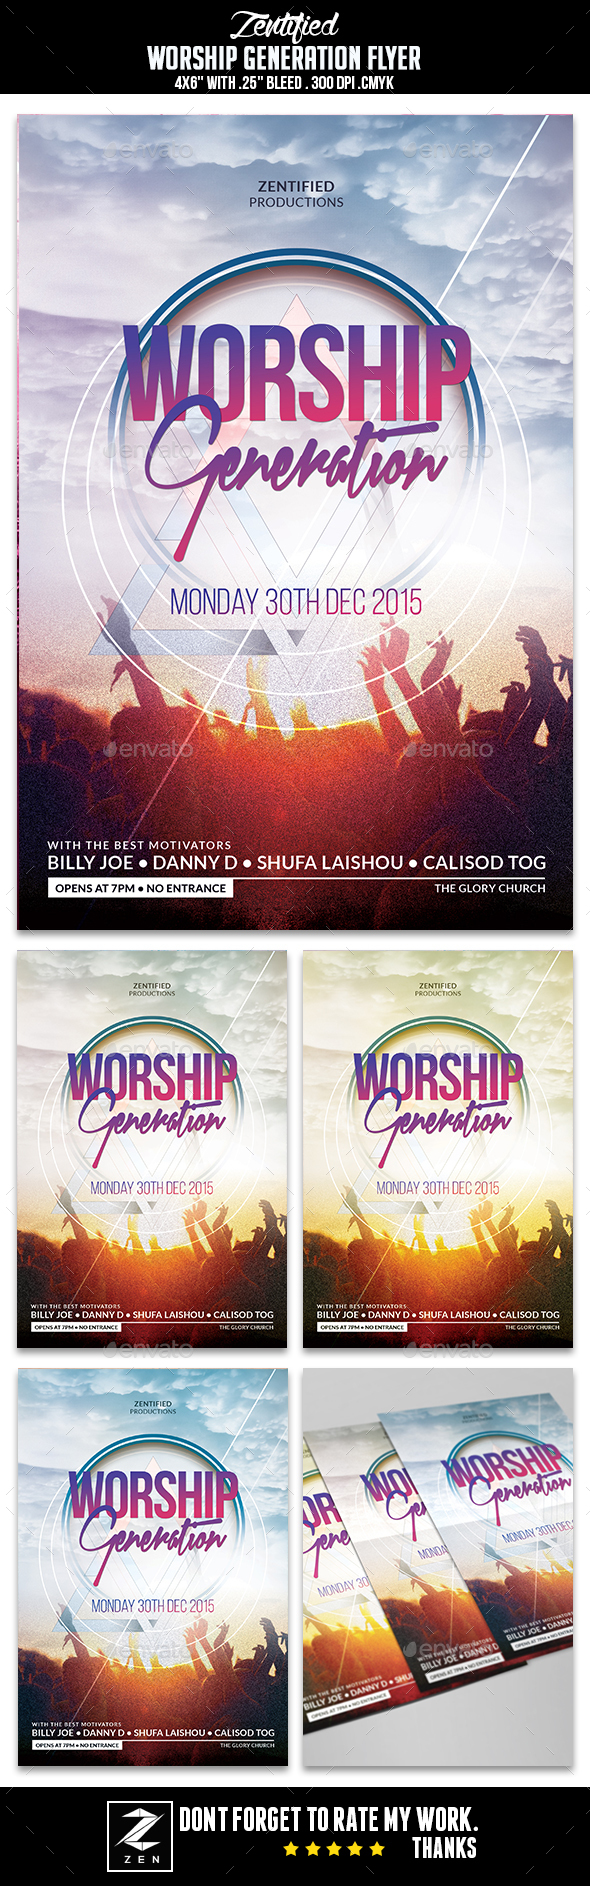 Worship Generation Flyer - Flyers Print Templates